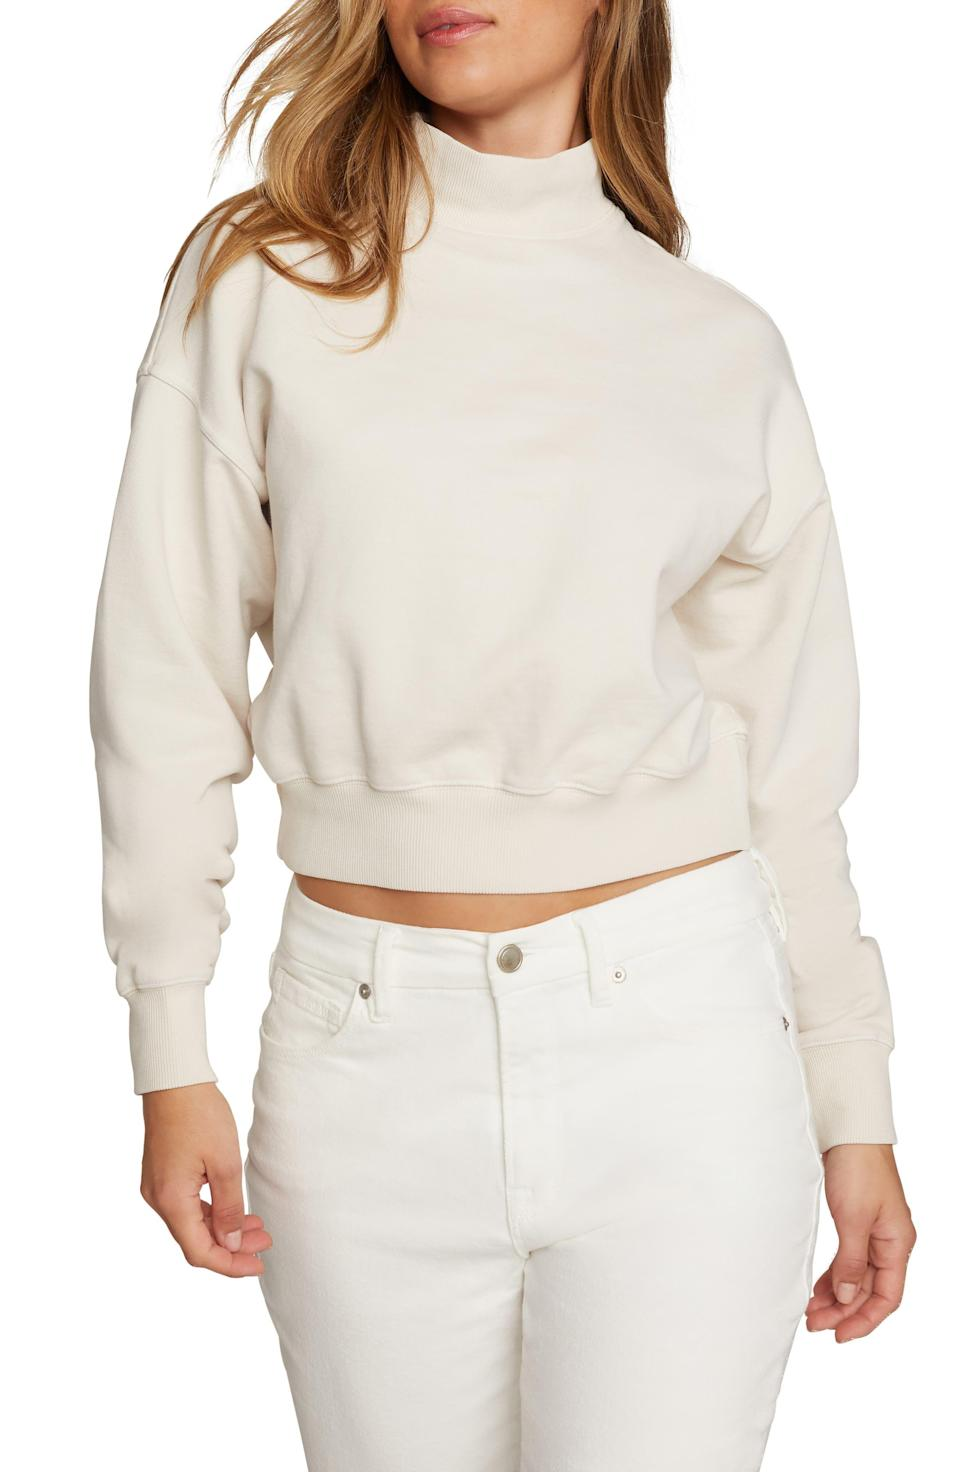 """<p><strong>Good American</strong></p><p>nordstrom.com</p><p><strong>$65.90</strong></p><p><a href=""""https://go.redirectingat.com?id=74968X1596630&url=https%3A%2F%2Fwww.nordstrom.com%2Fs%2Fgood-american-mock-neck-sweatshirt-plus-size%2F5884254&sref=https%3A%2F%2Fwww.womenshealthmag.com%2Flife%2Fg37511825%2Fbest-fall-sweaters%2F"""" rel=""""nofollow noopener"""" target=""""_blank"""" data-ylk=""""slk:Shop Now"""" class=""""link rapid-noclick-resp"""">Shop Now</a></p><p>For some, a full-blown turtleneck can feel a bit restricting. This mock neck extends only a little bit, and it features a wider neckline that's extra roomy. </p><p>The hem on this one is just a <em>tiny</em> bit cropped, so it's perfect for colder temps.</p>"""